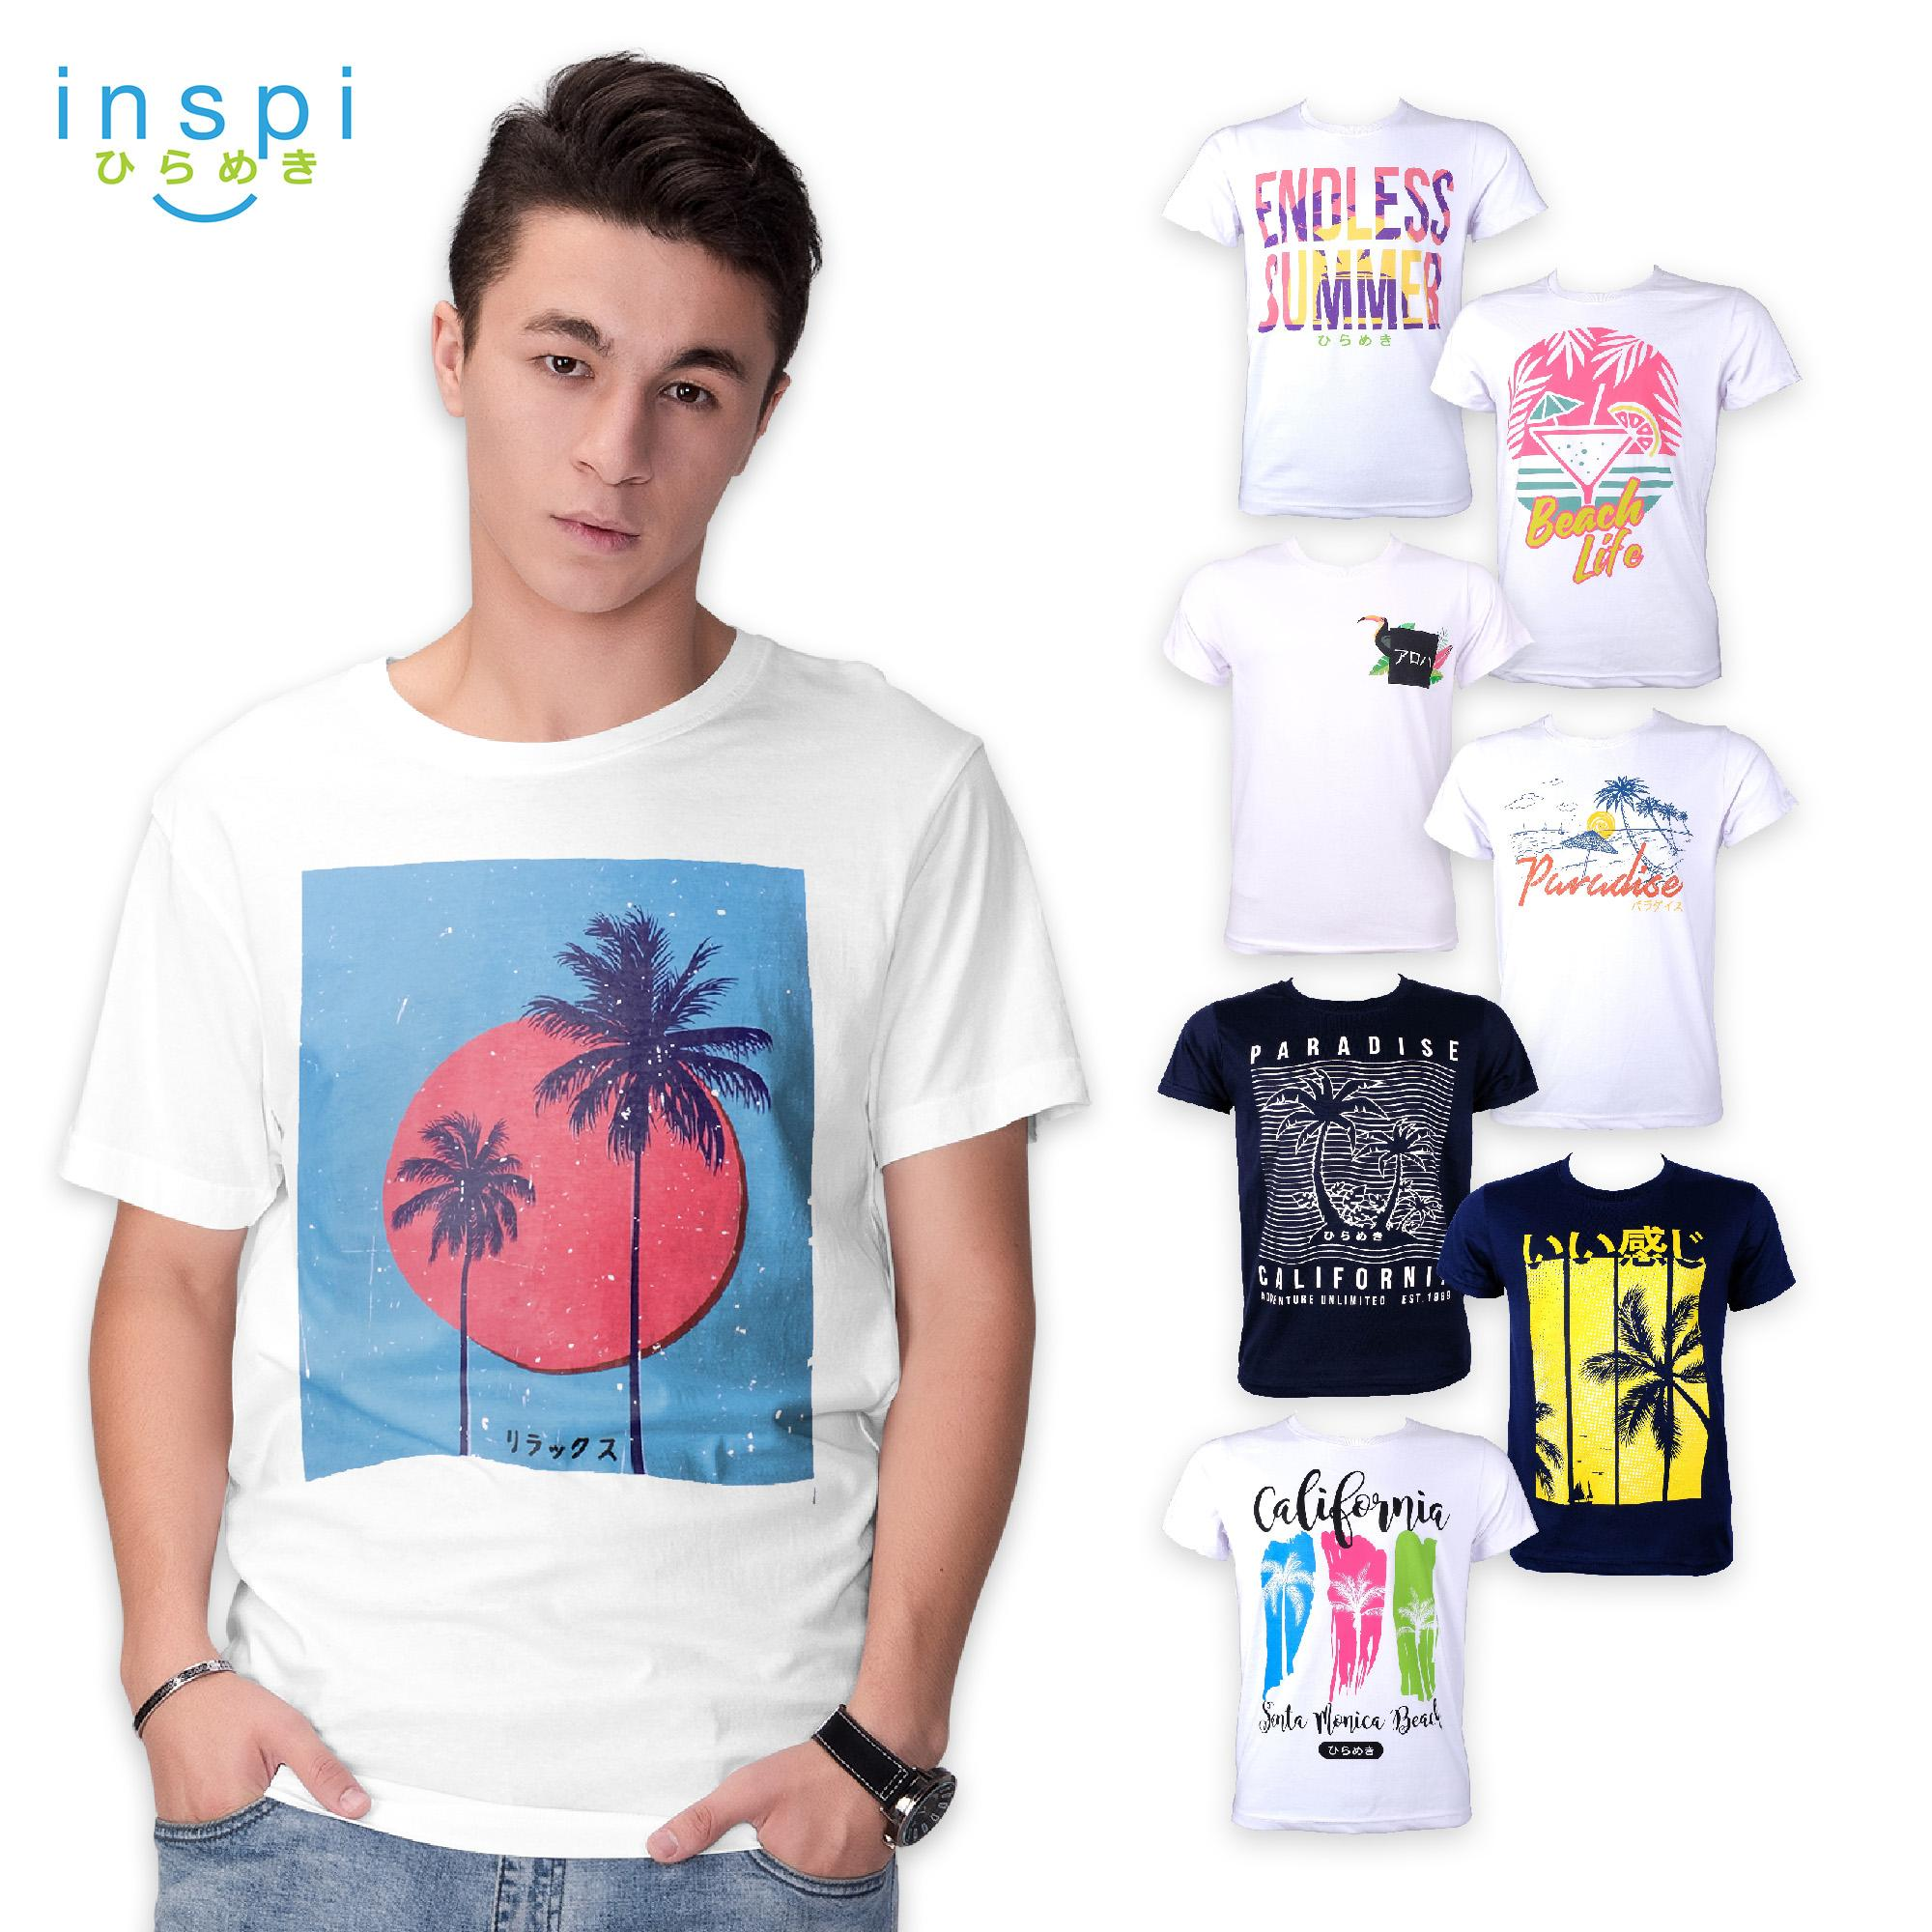 f1d5b7be0 INSPI Tees Summer Collection tshirt printed graphic tee Mens t shirt shirts  for men tshirts sale